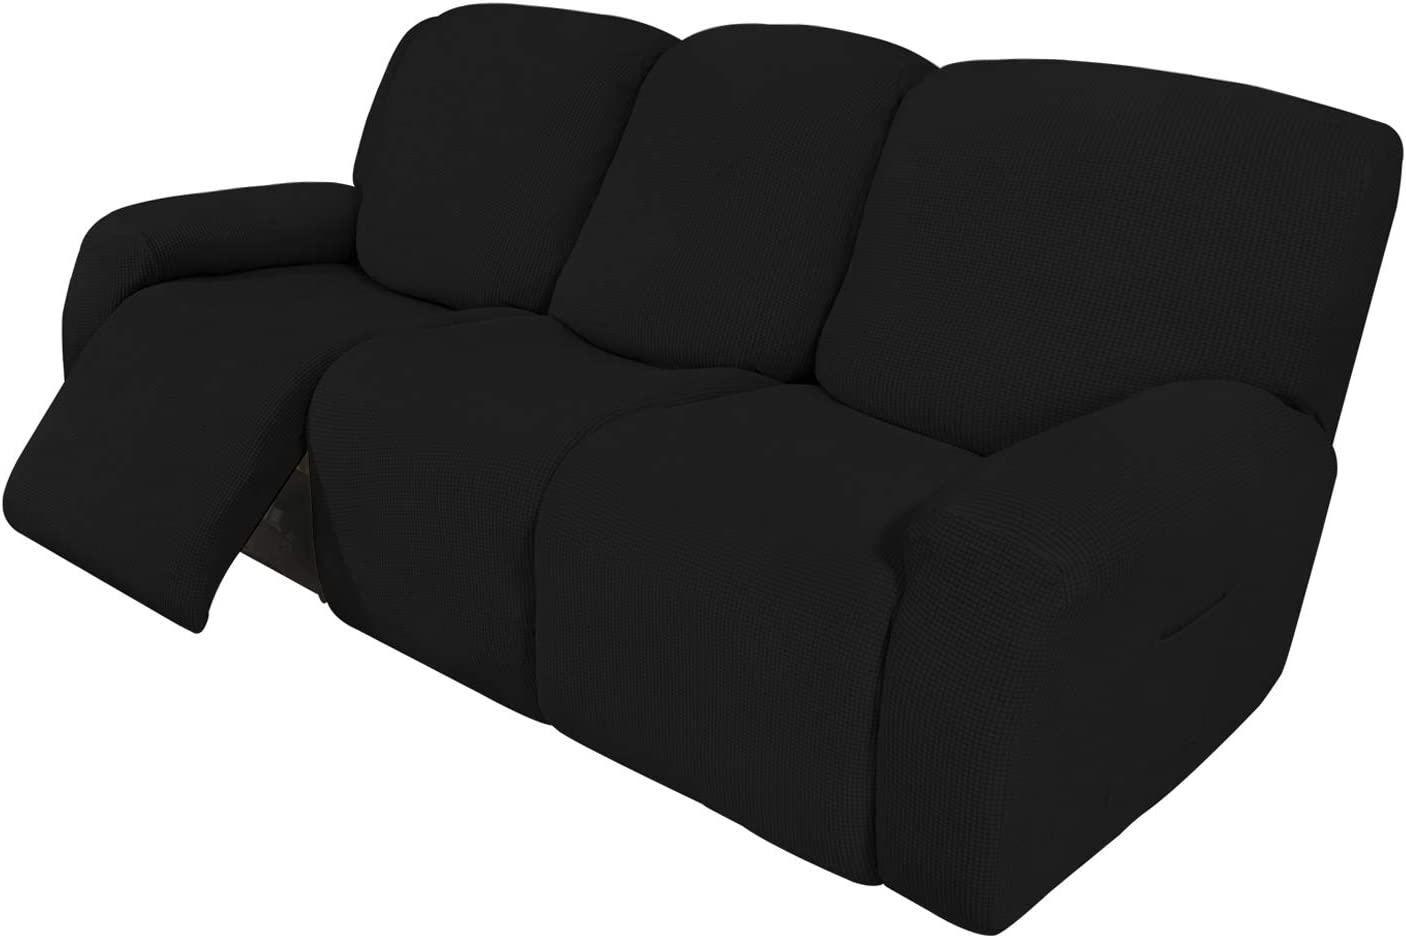 Easy-Going 8 Pieces Recliner Sofa Stretch Sofa Slipcover Sofa Cover Furniture Protector Couch Soft with Elastic Bottom Kids, Spandex Jacquard Fabric Small Checks Black